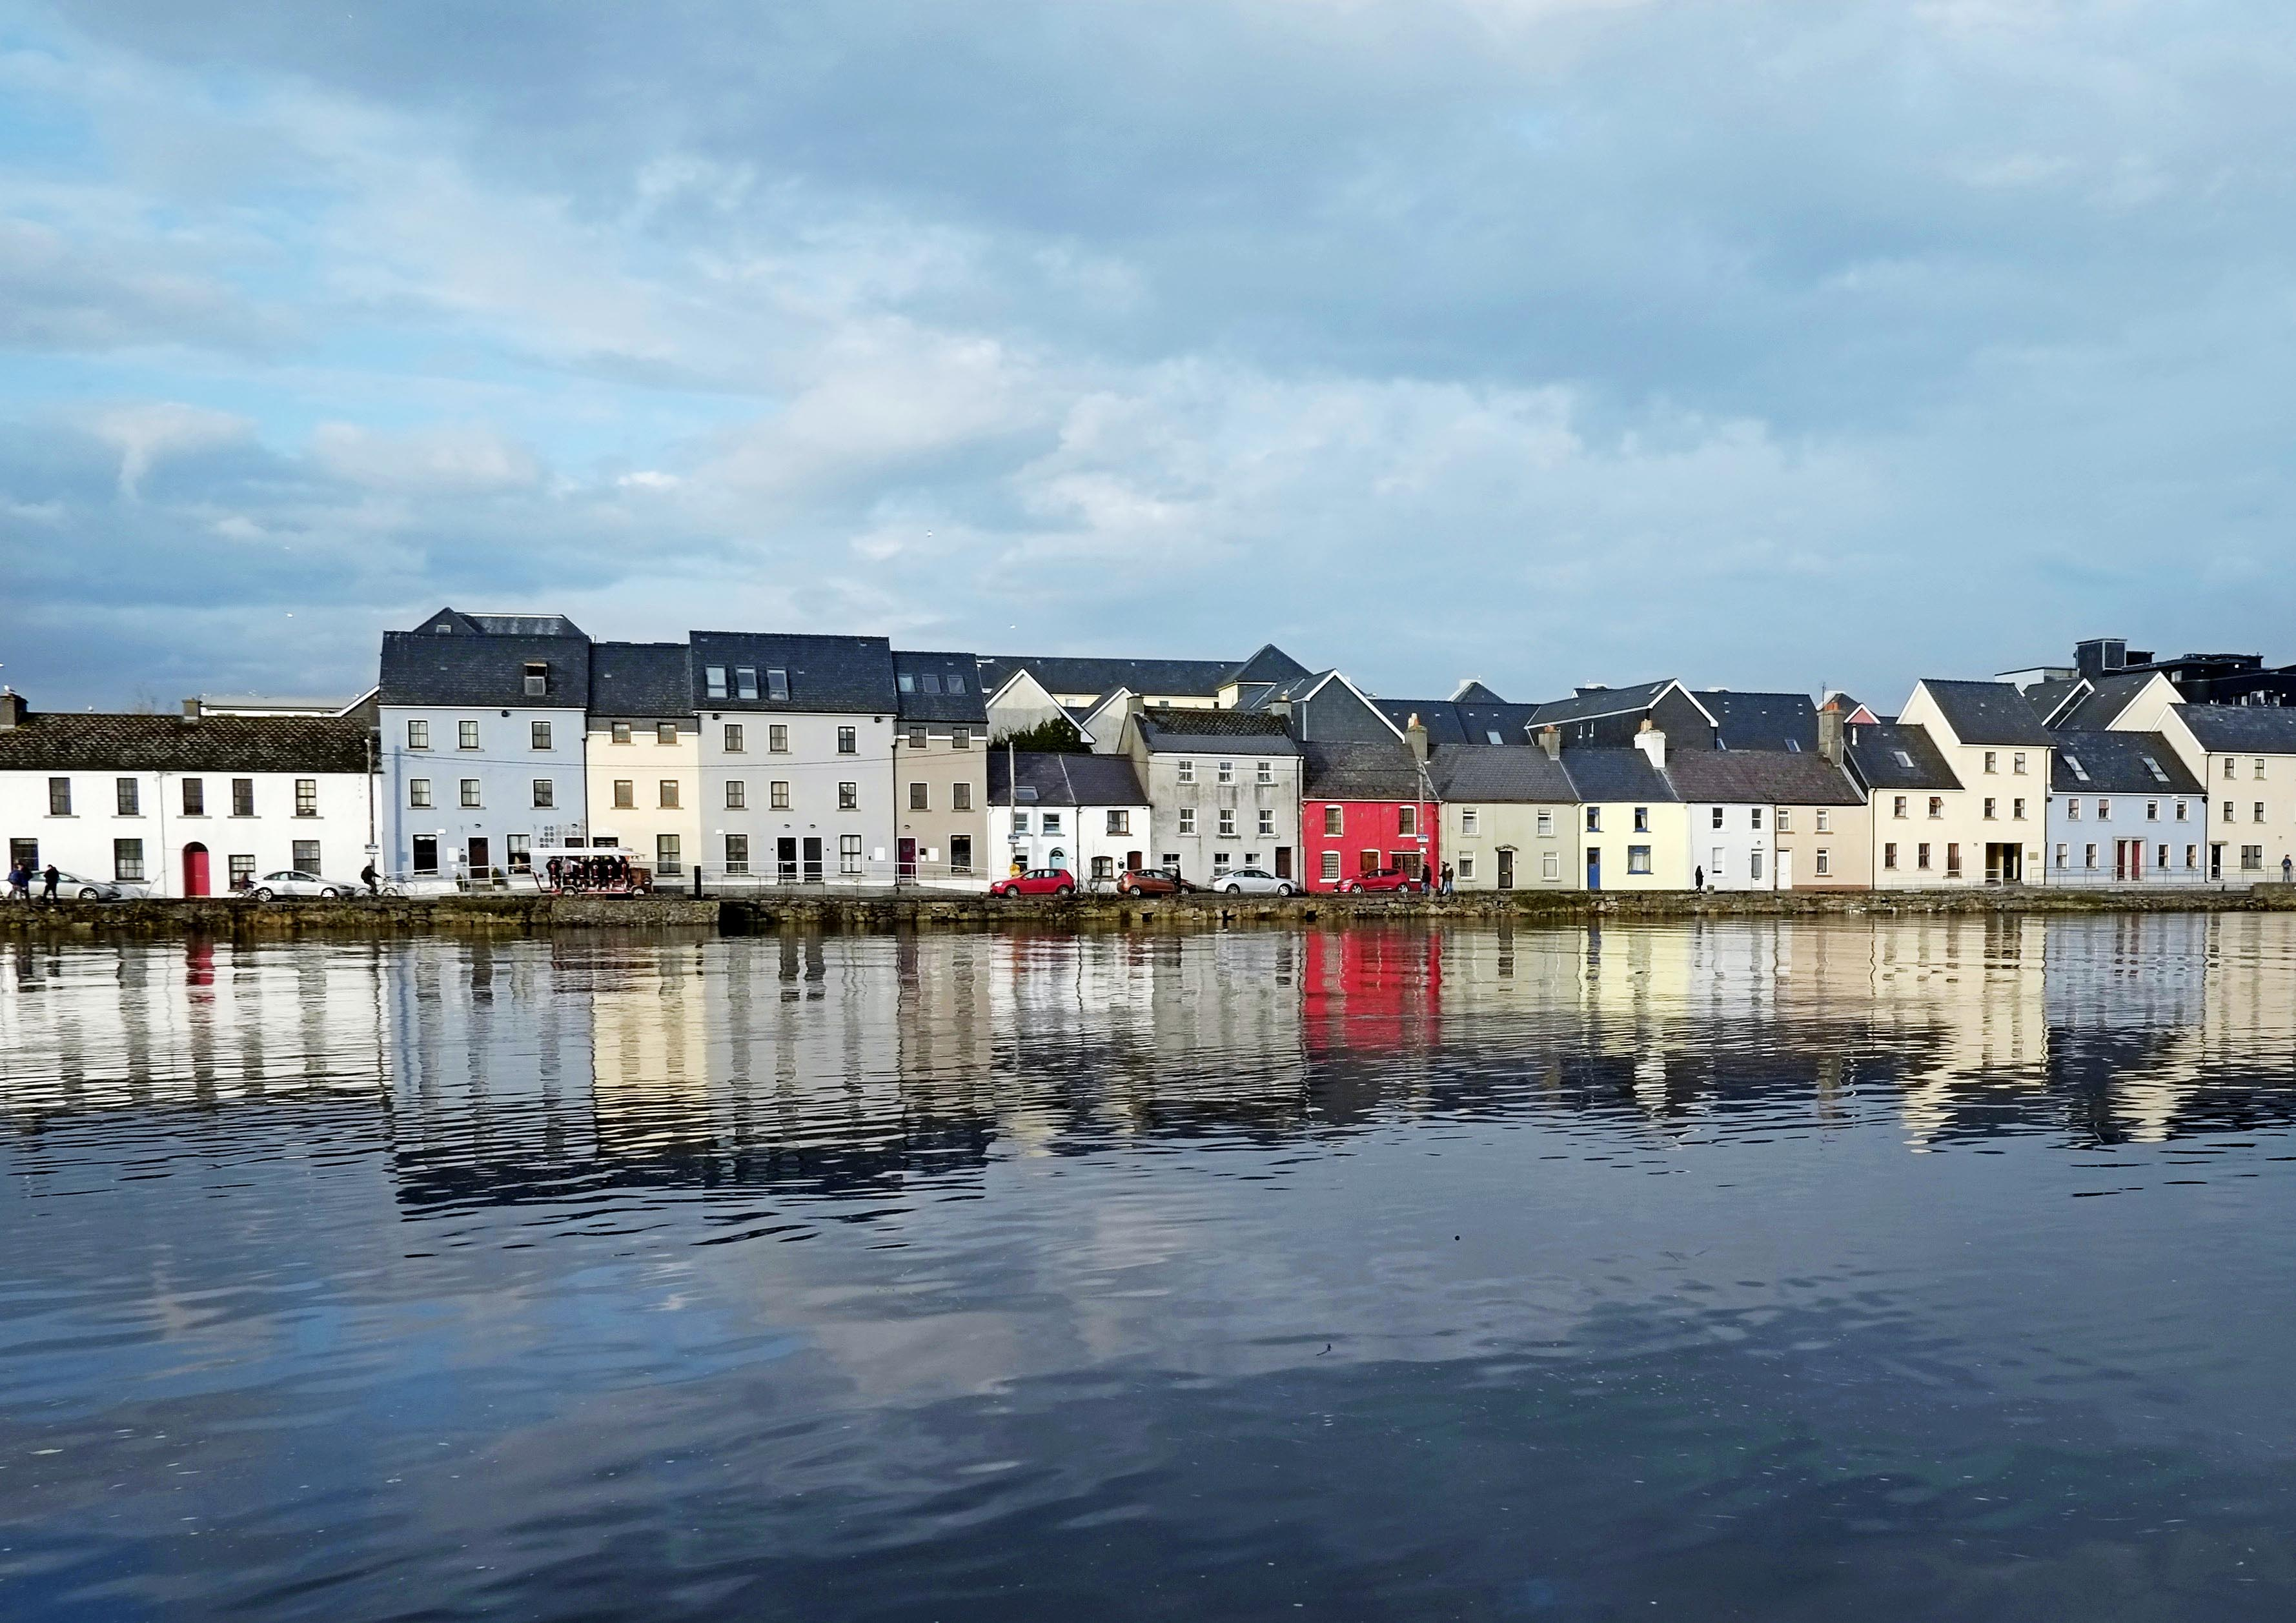 A line of houses on the edge of the water